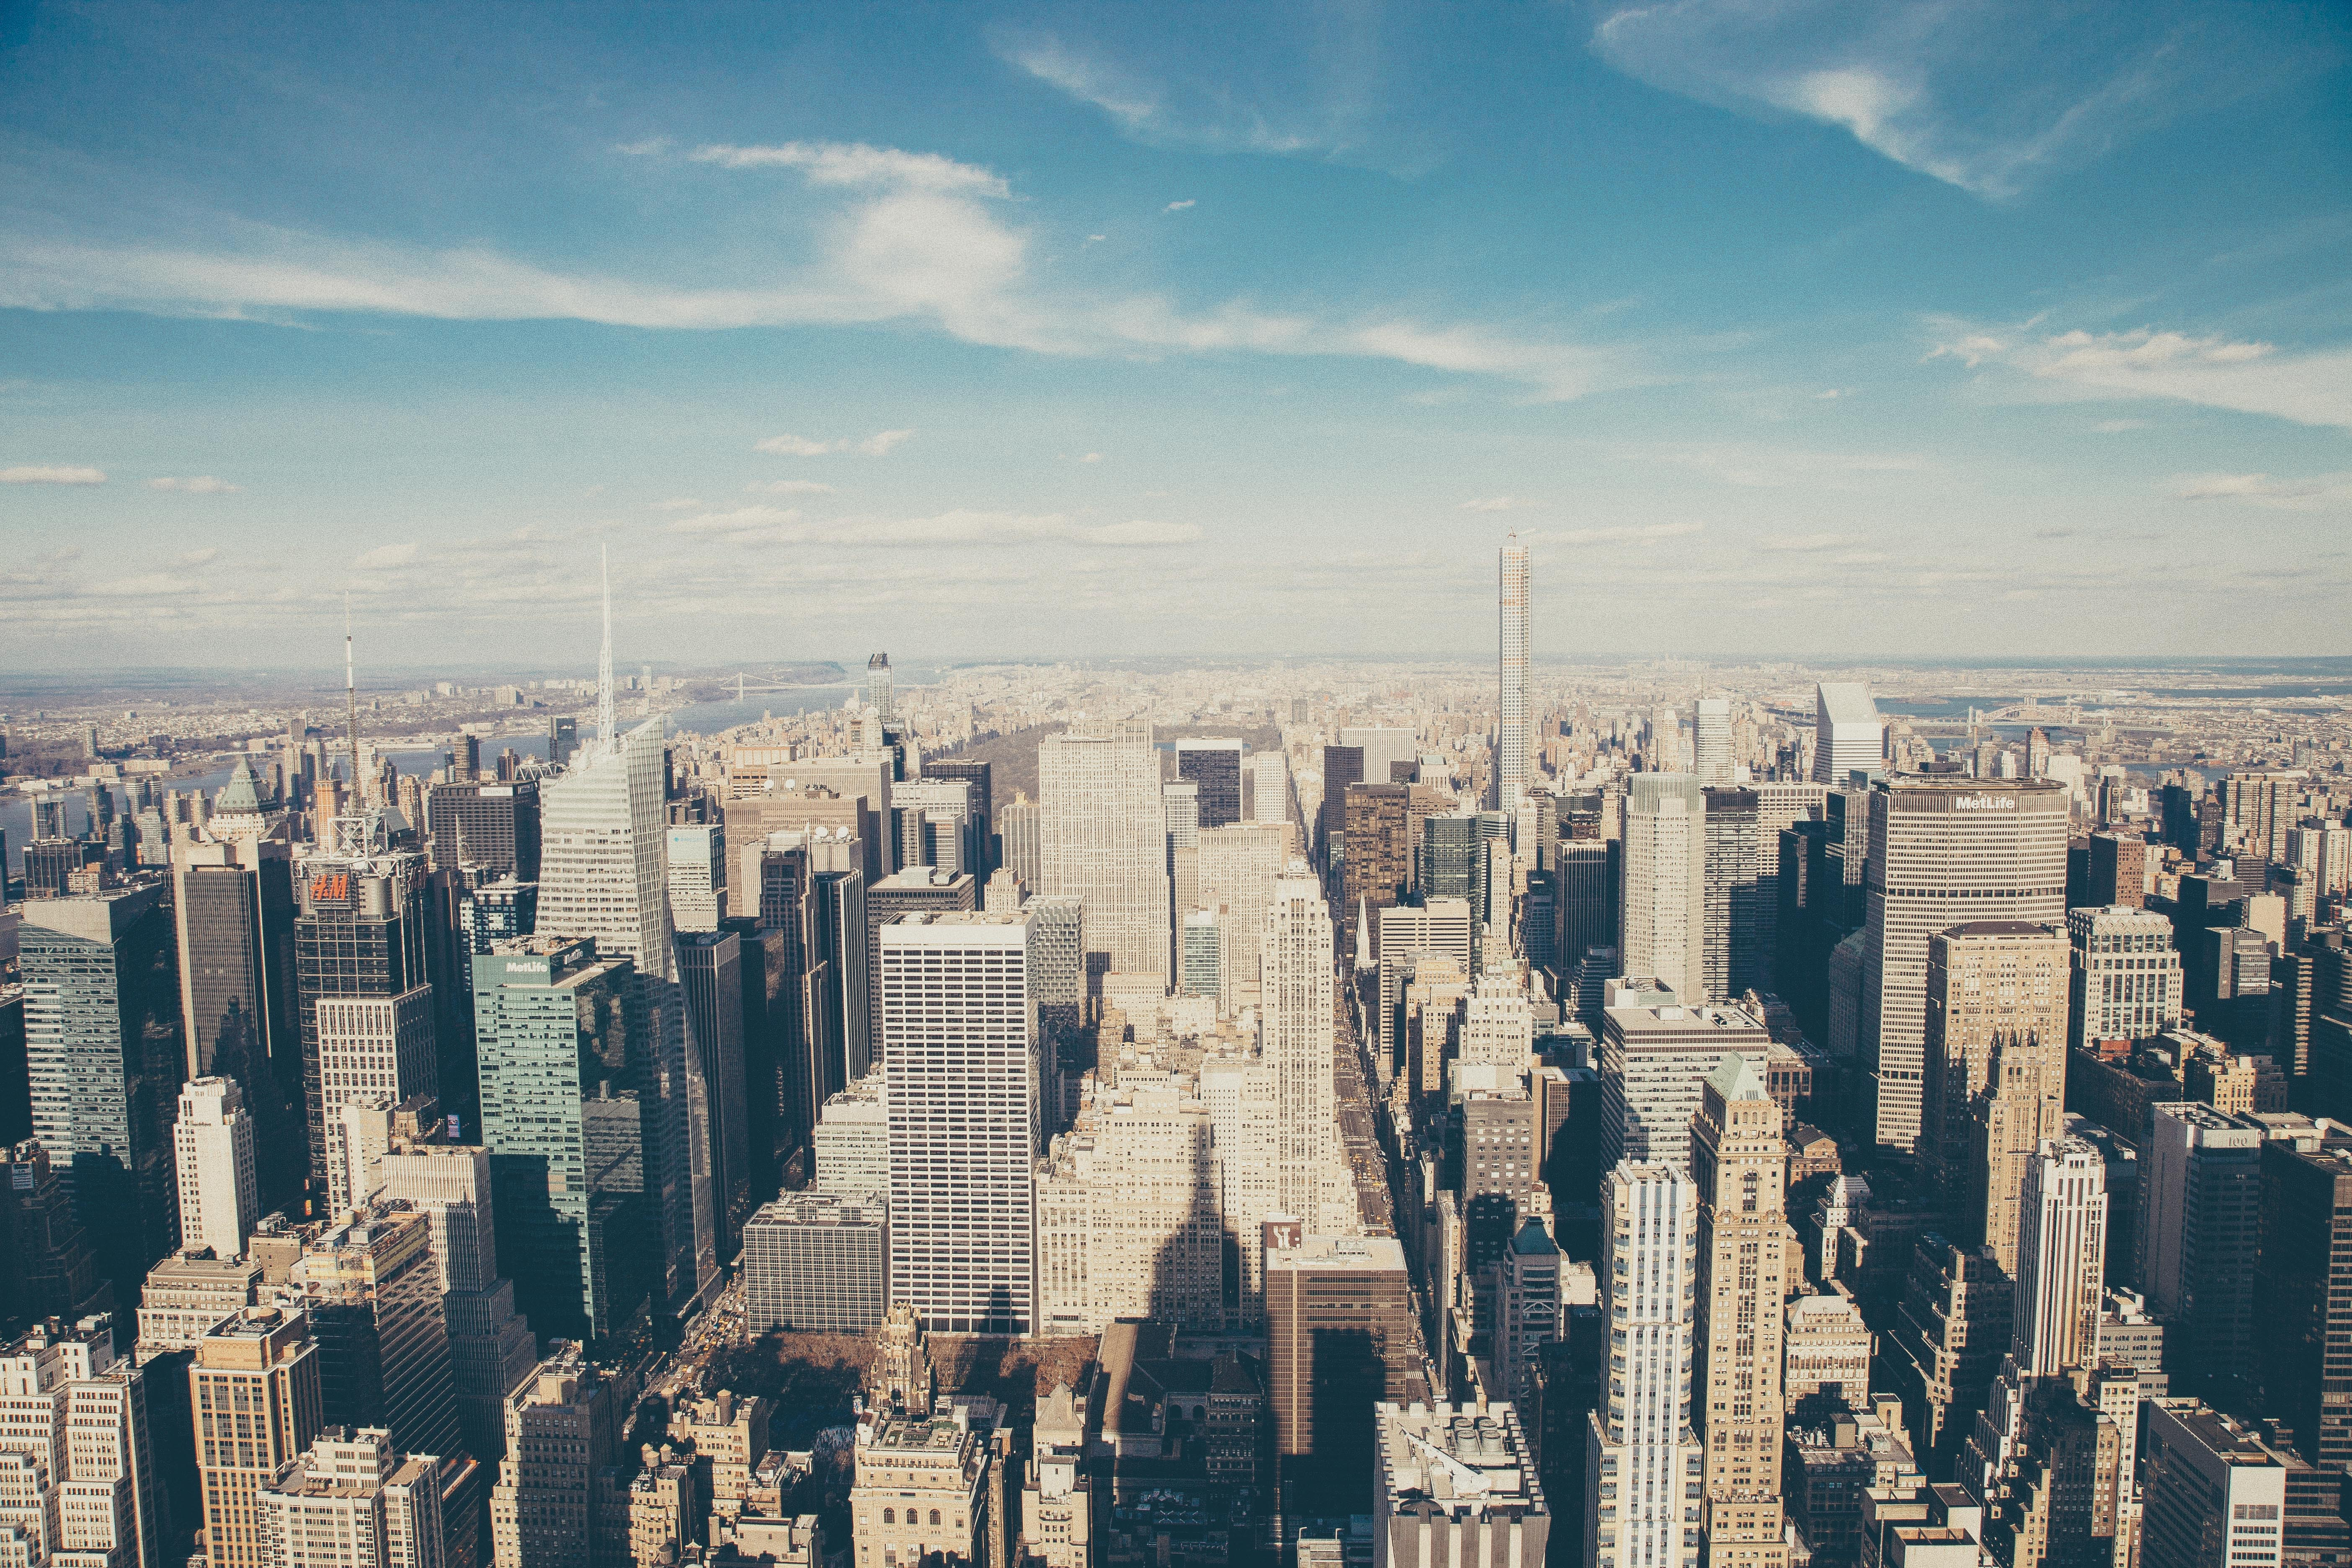 The New York City skyline on a bright day with a beautiful blue sky